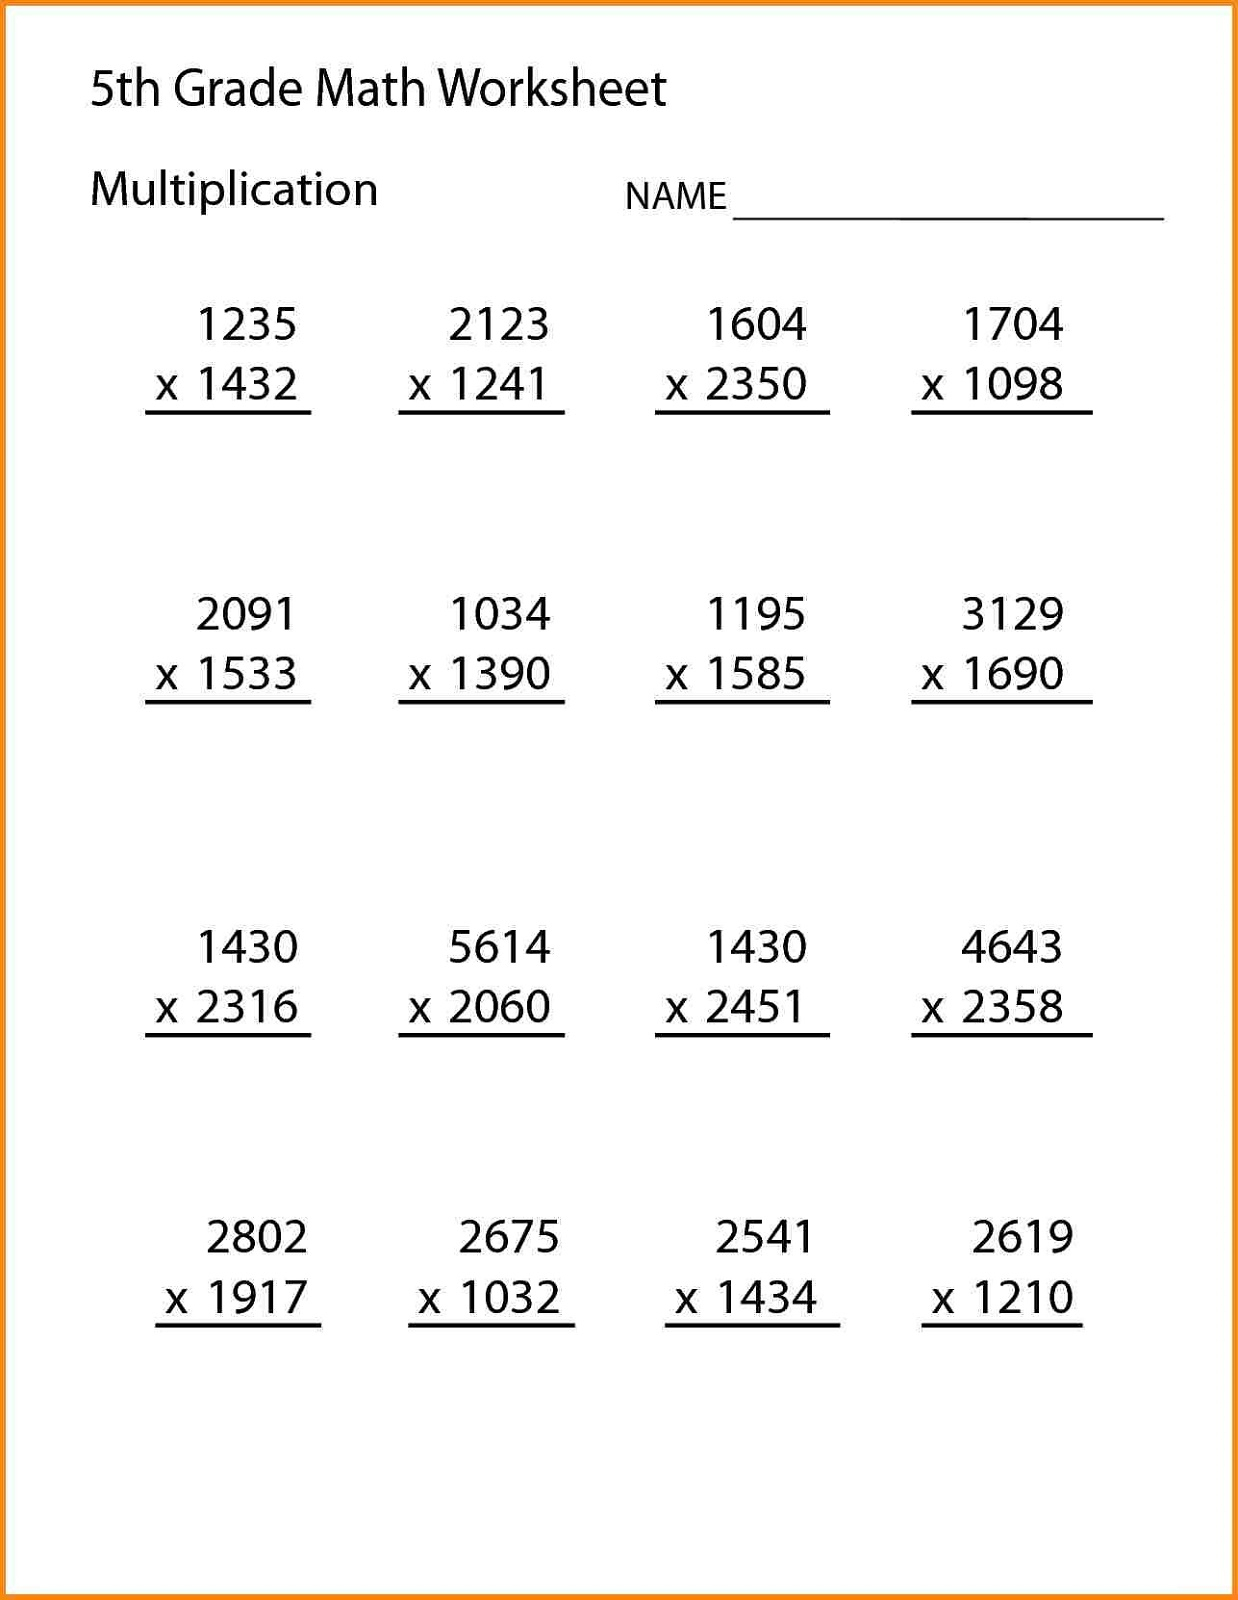 Fifth Grade Math Worksheets | Printable Shelter within Printable Multiplication Problems For 5Th Grade